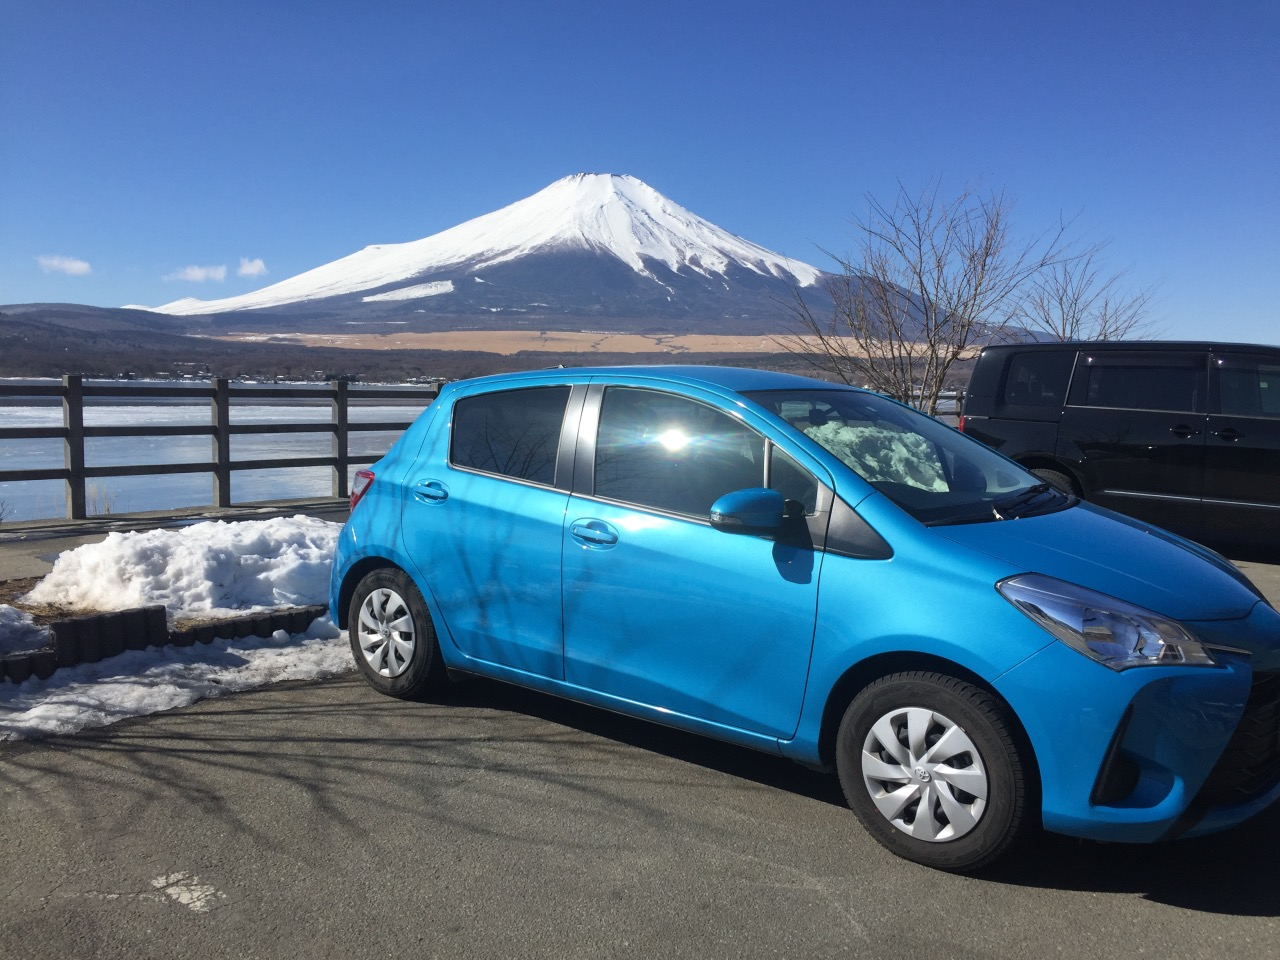 We drove around the Fuji Five Lakes area and Hakone for three days. Always love this area!